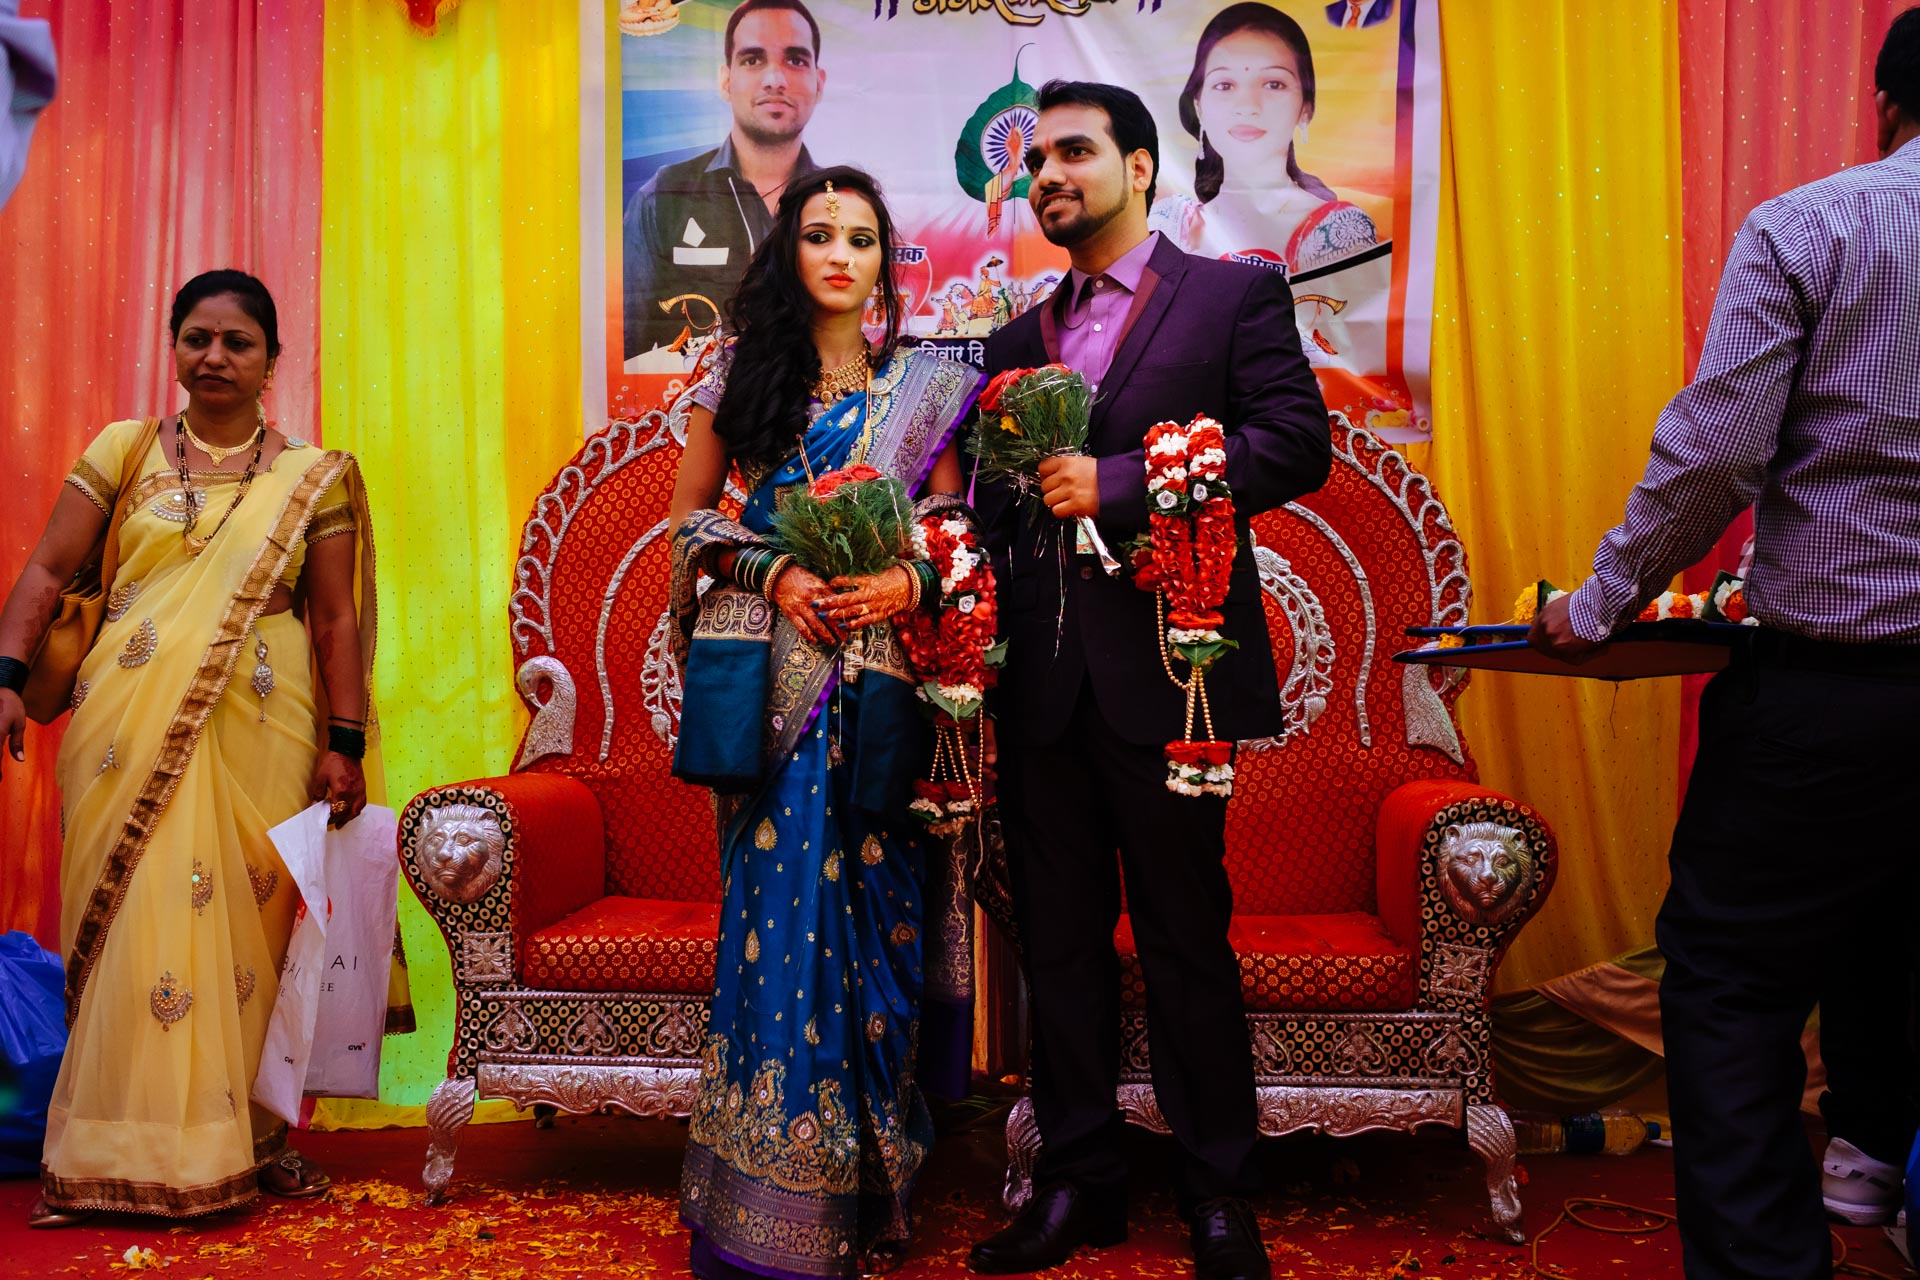 wedding_in_mumbai-84.jpg